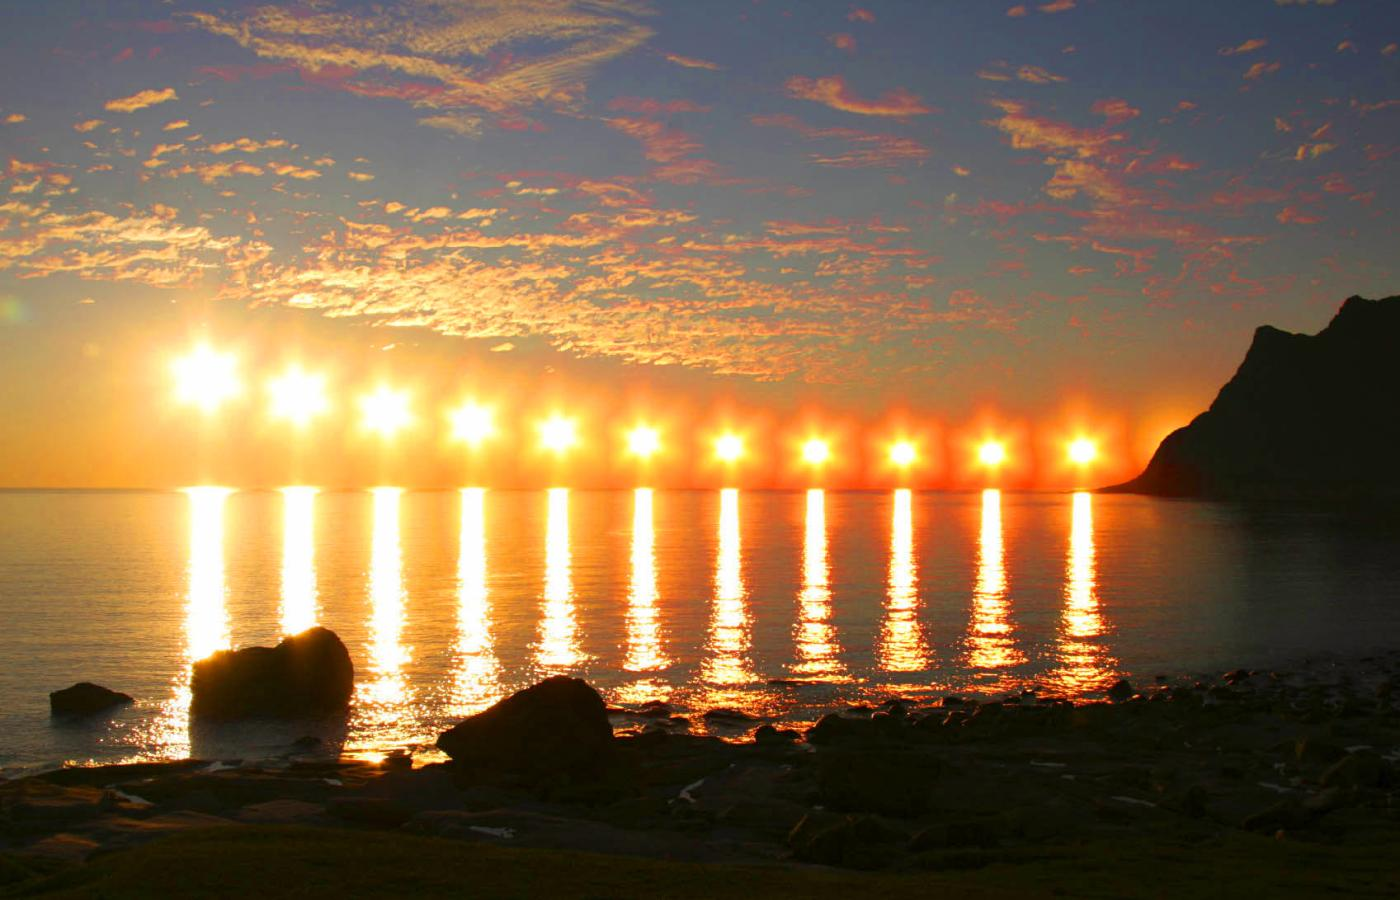 The midnight sun shown through time lapse photography in the NWT